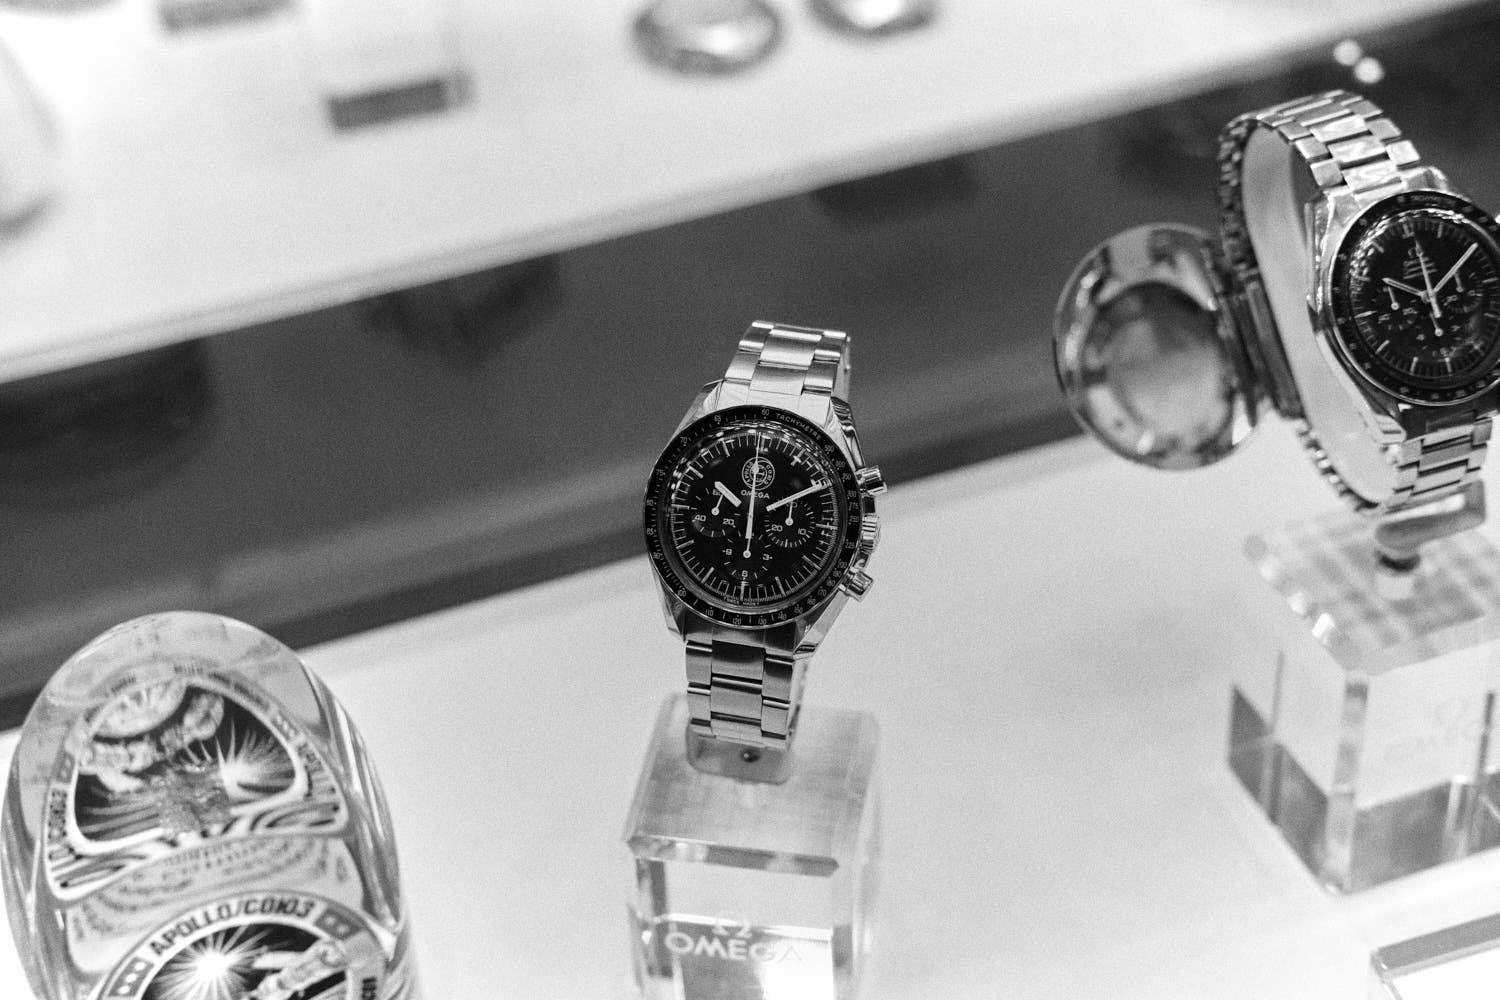 Soyuz-Omega-Museum-Visit-Monochrome-Watches